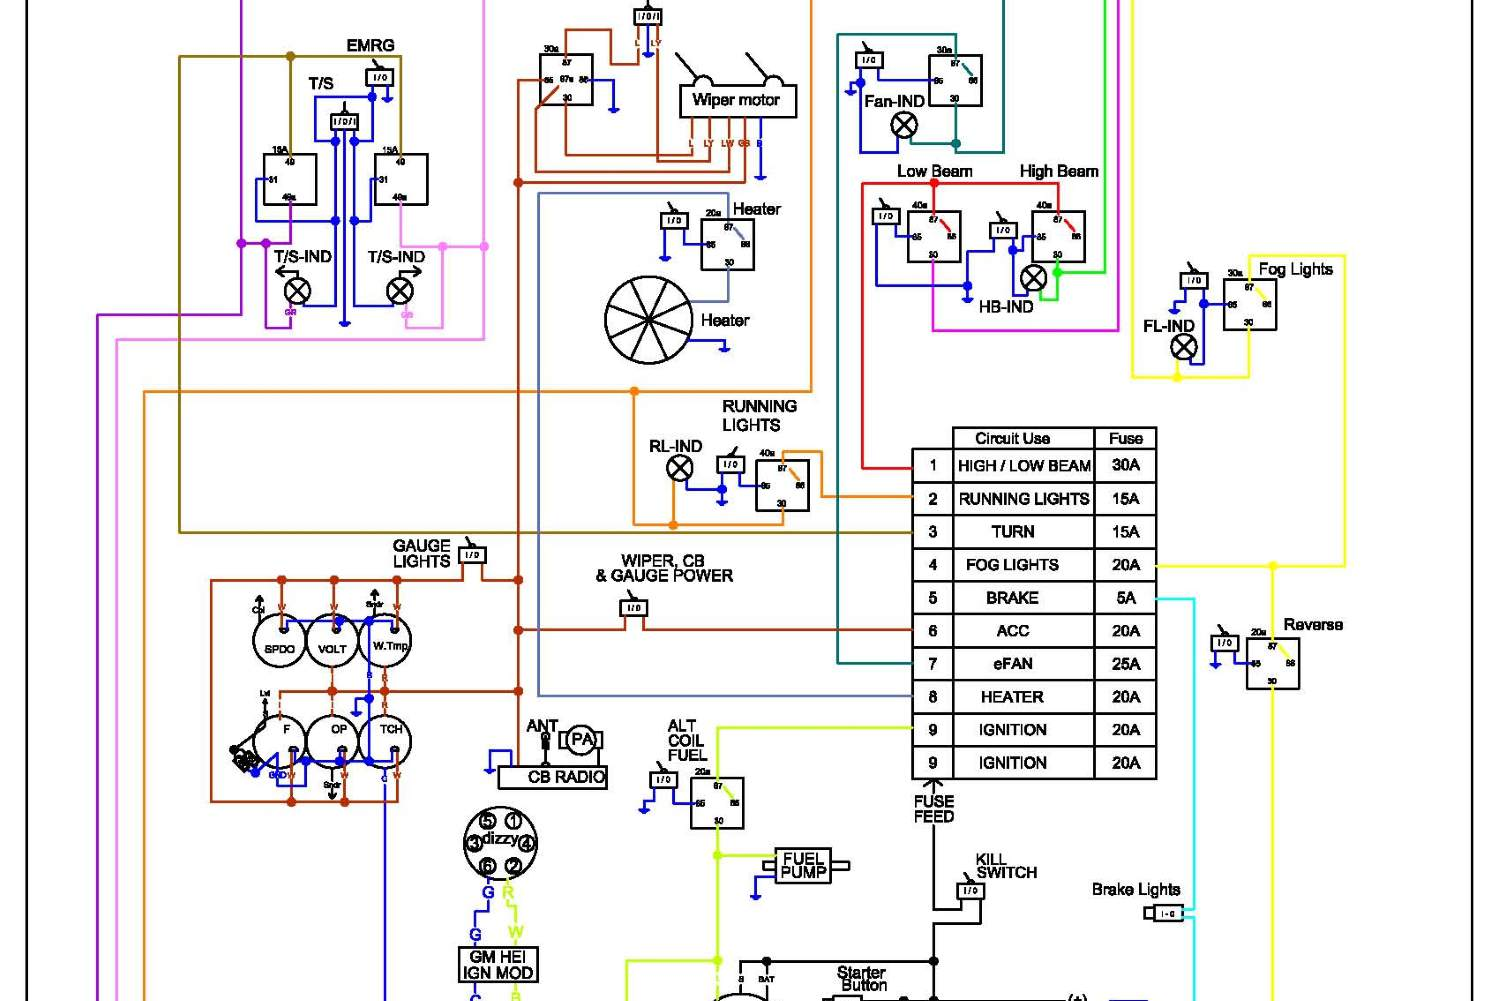 Basic Wiring Diagram Fuel Gauge - Wiring Diagram Schema